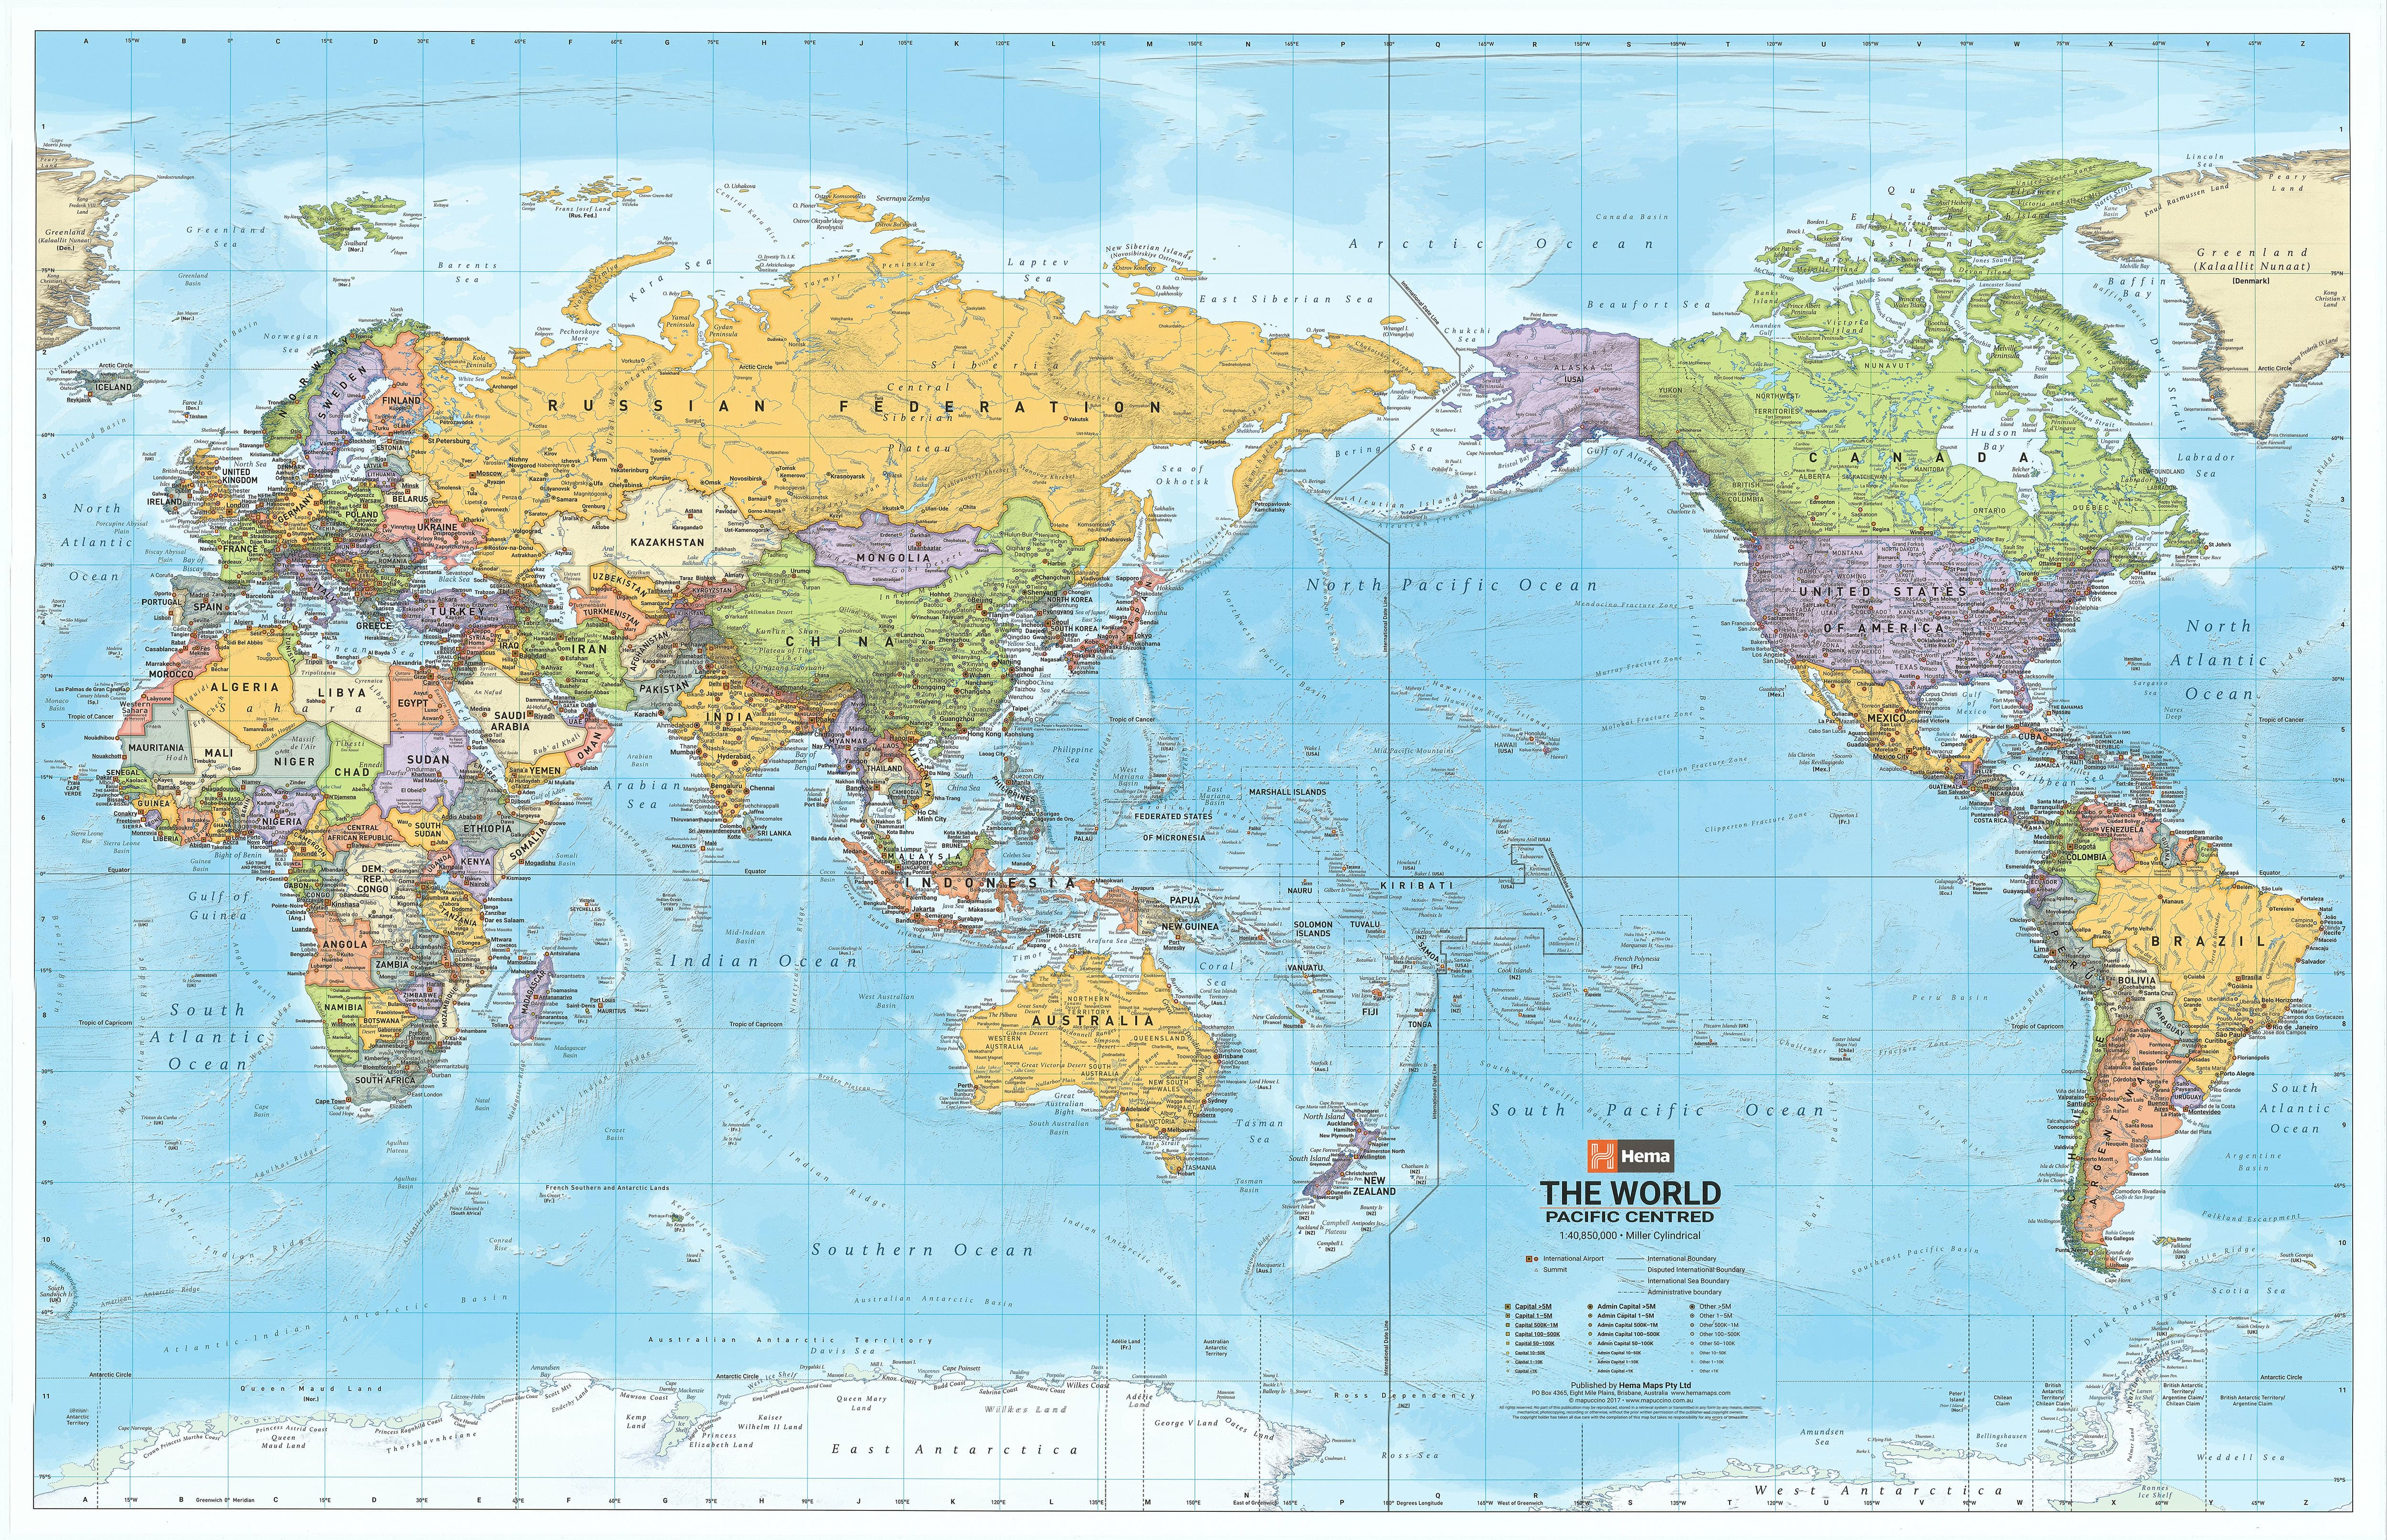 Map Of The The World.World Hema Political Pacific 1550 X 990mm Supermap Laminated Wall Map With Free Map Dots